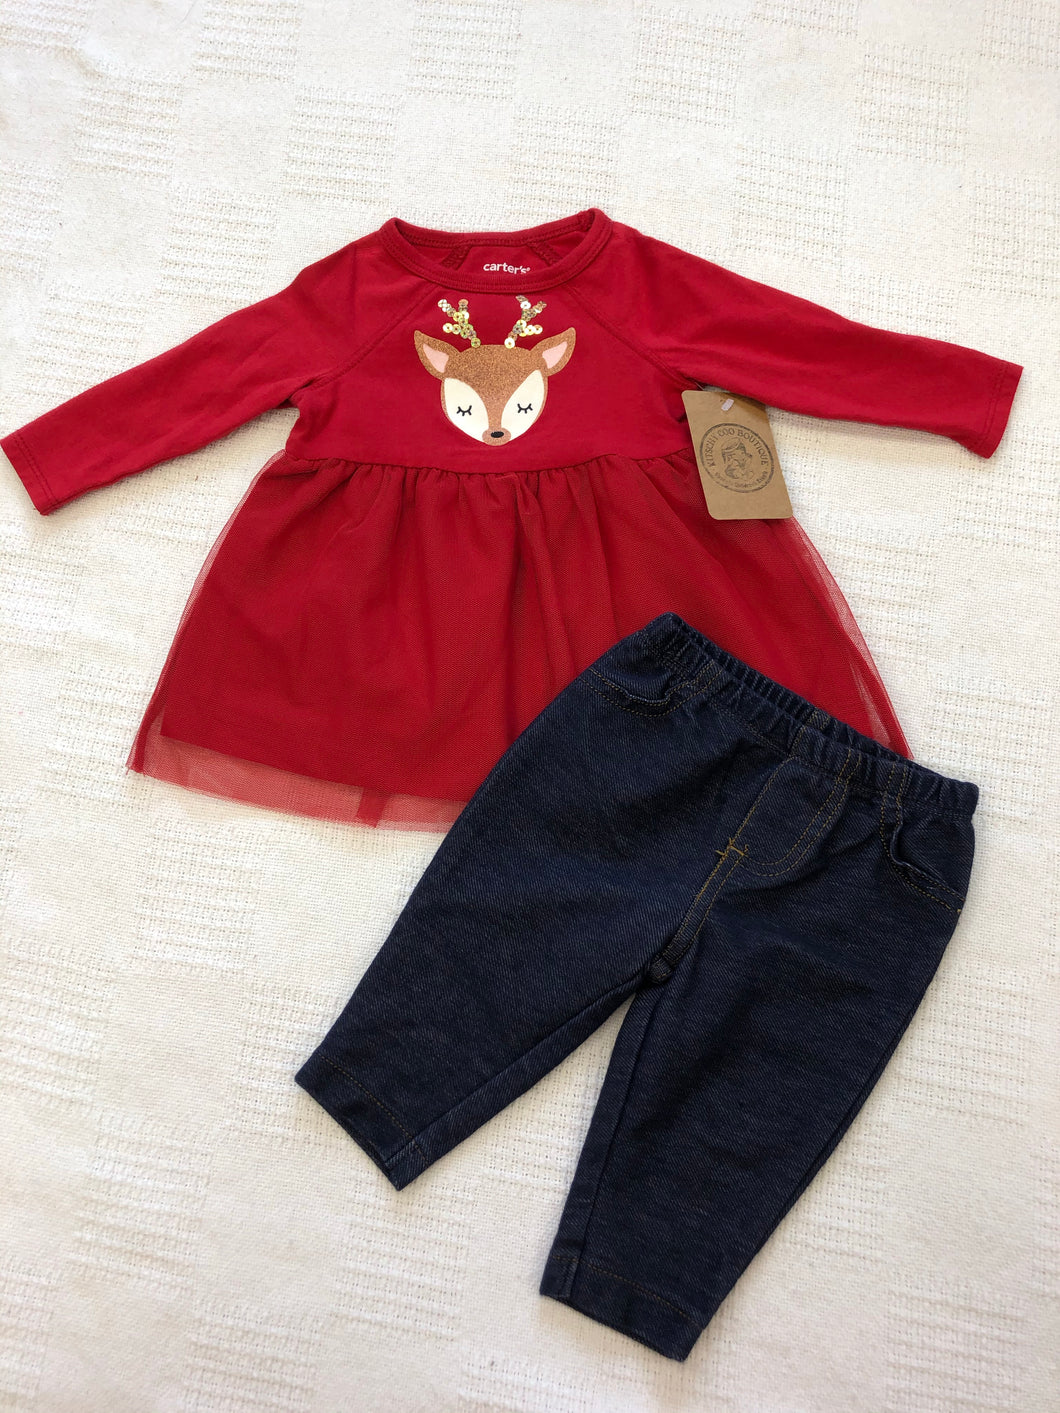 Girls 3m Red Deer Outfit IN161